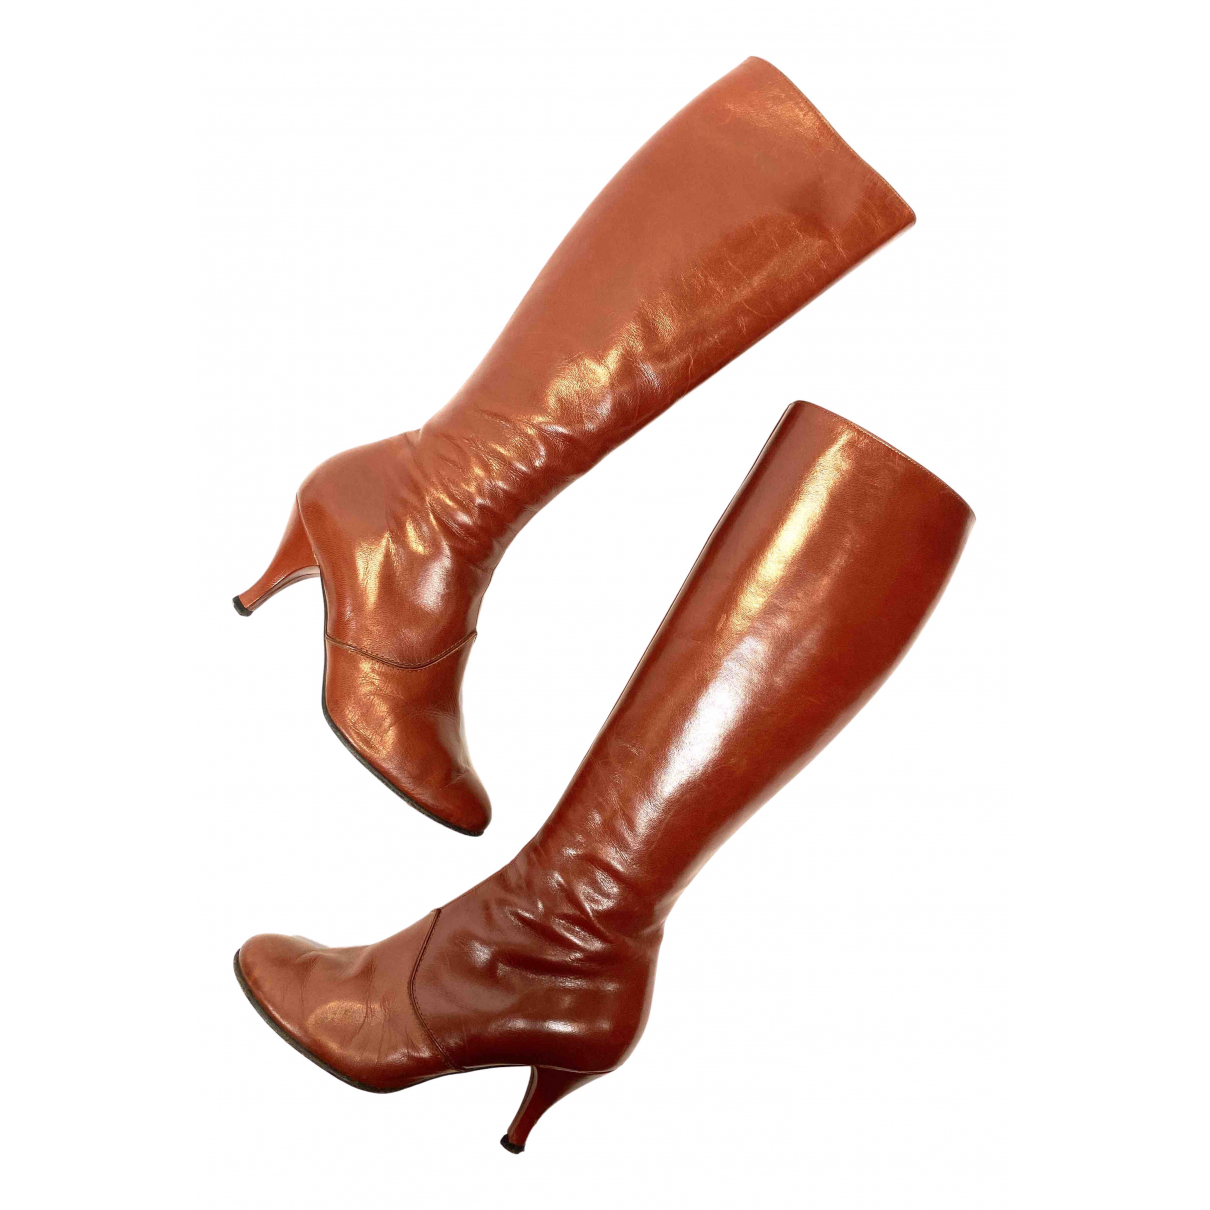 Marc Jacobs N Brown Leather Boots for Women 37 EU